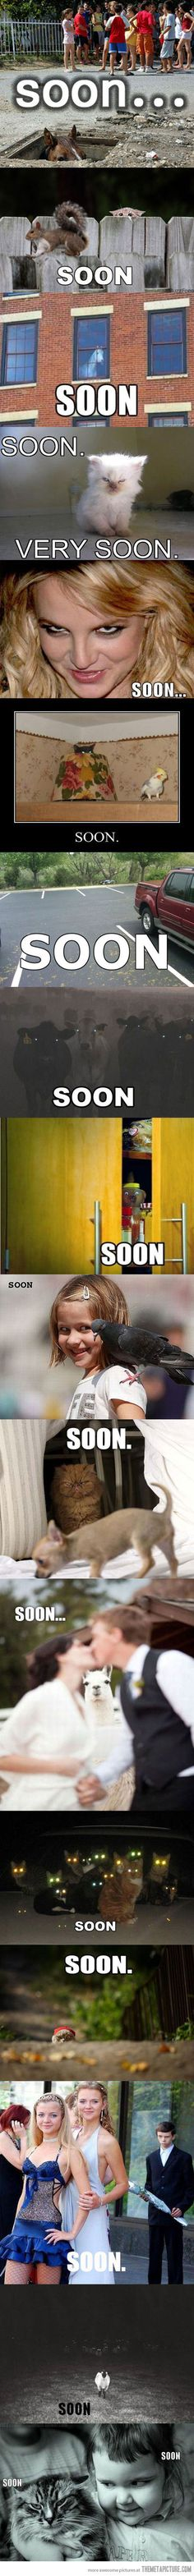 Soon...very soon... This made me laugh a lot harder than it should have